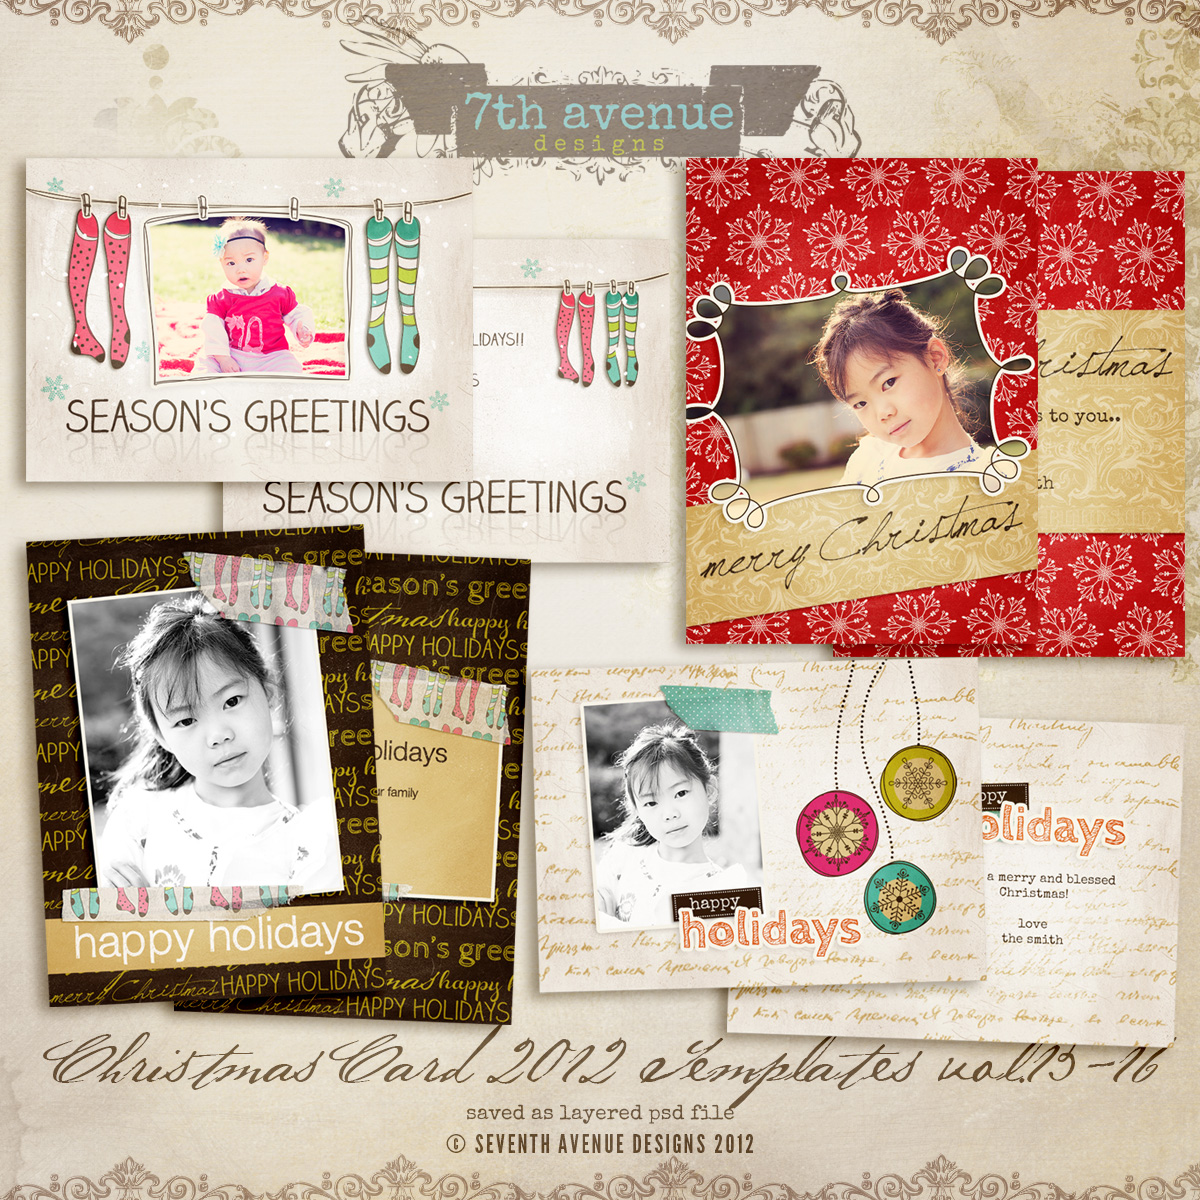 2012 Christmas Card Templates vol.13-16 - 7x5 inch card template